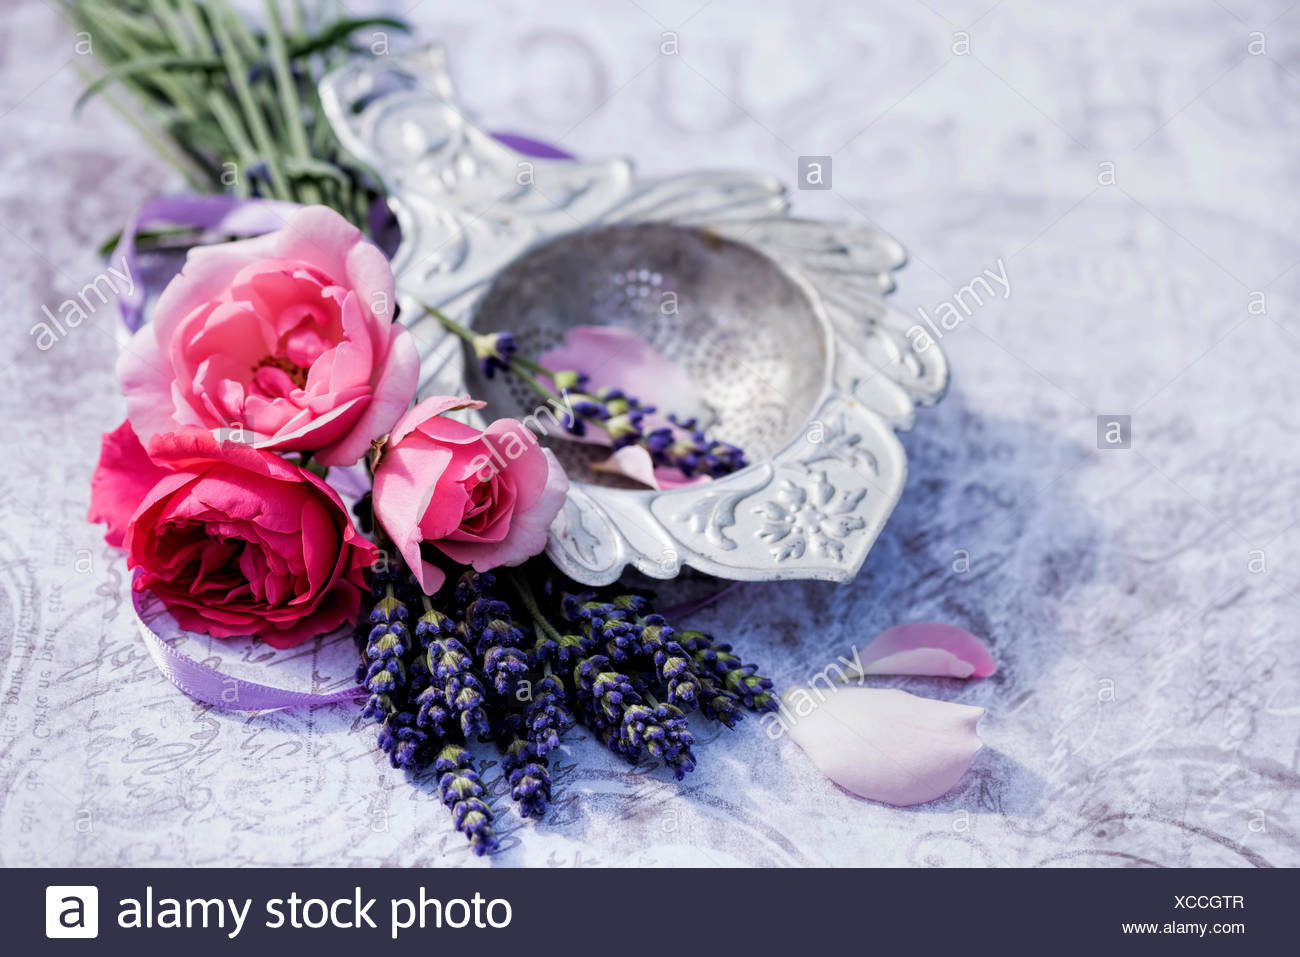 Decoration Florale Florale Decoration Old Silver Tea Strainer With Lavender And Pink